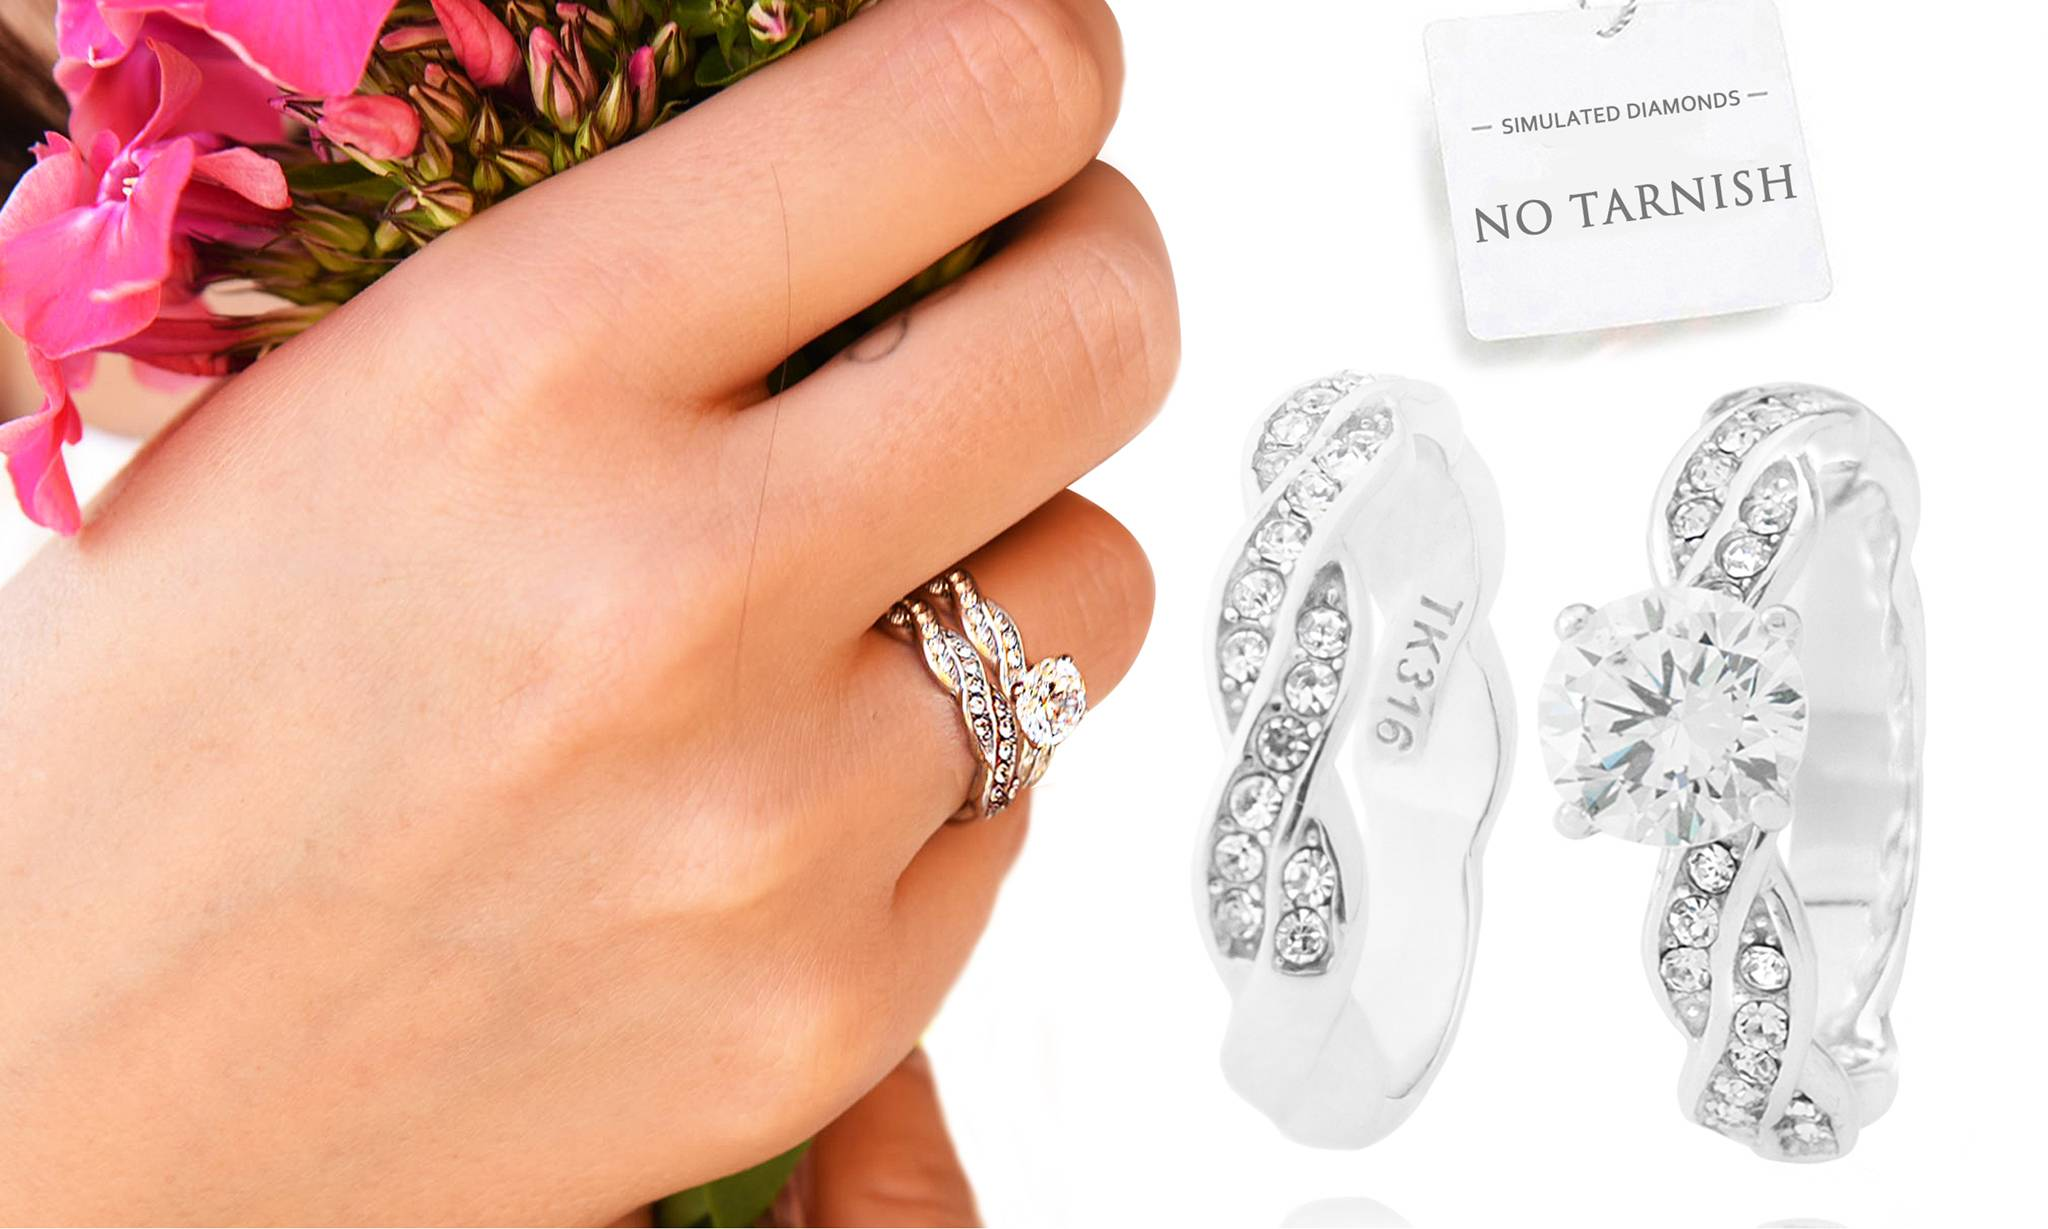 104.99 Ah! Jewellery Rings: Twisted Simulated Diamond Ring and Braided Twist Ring Band / P-Q / Two